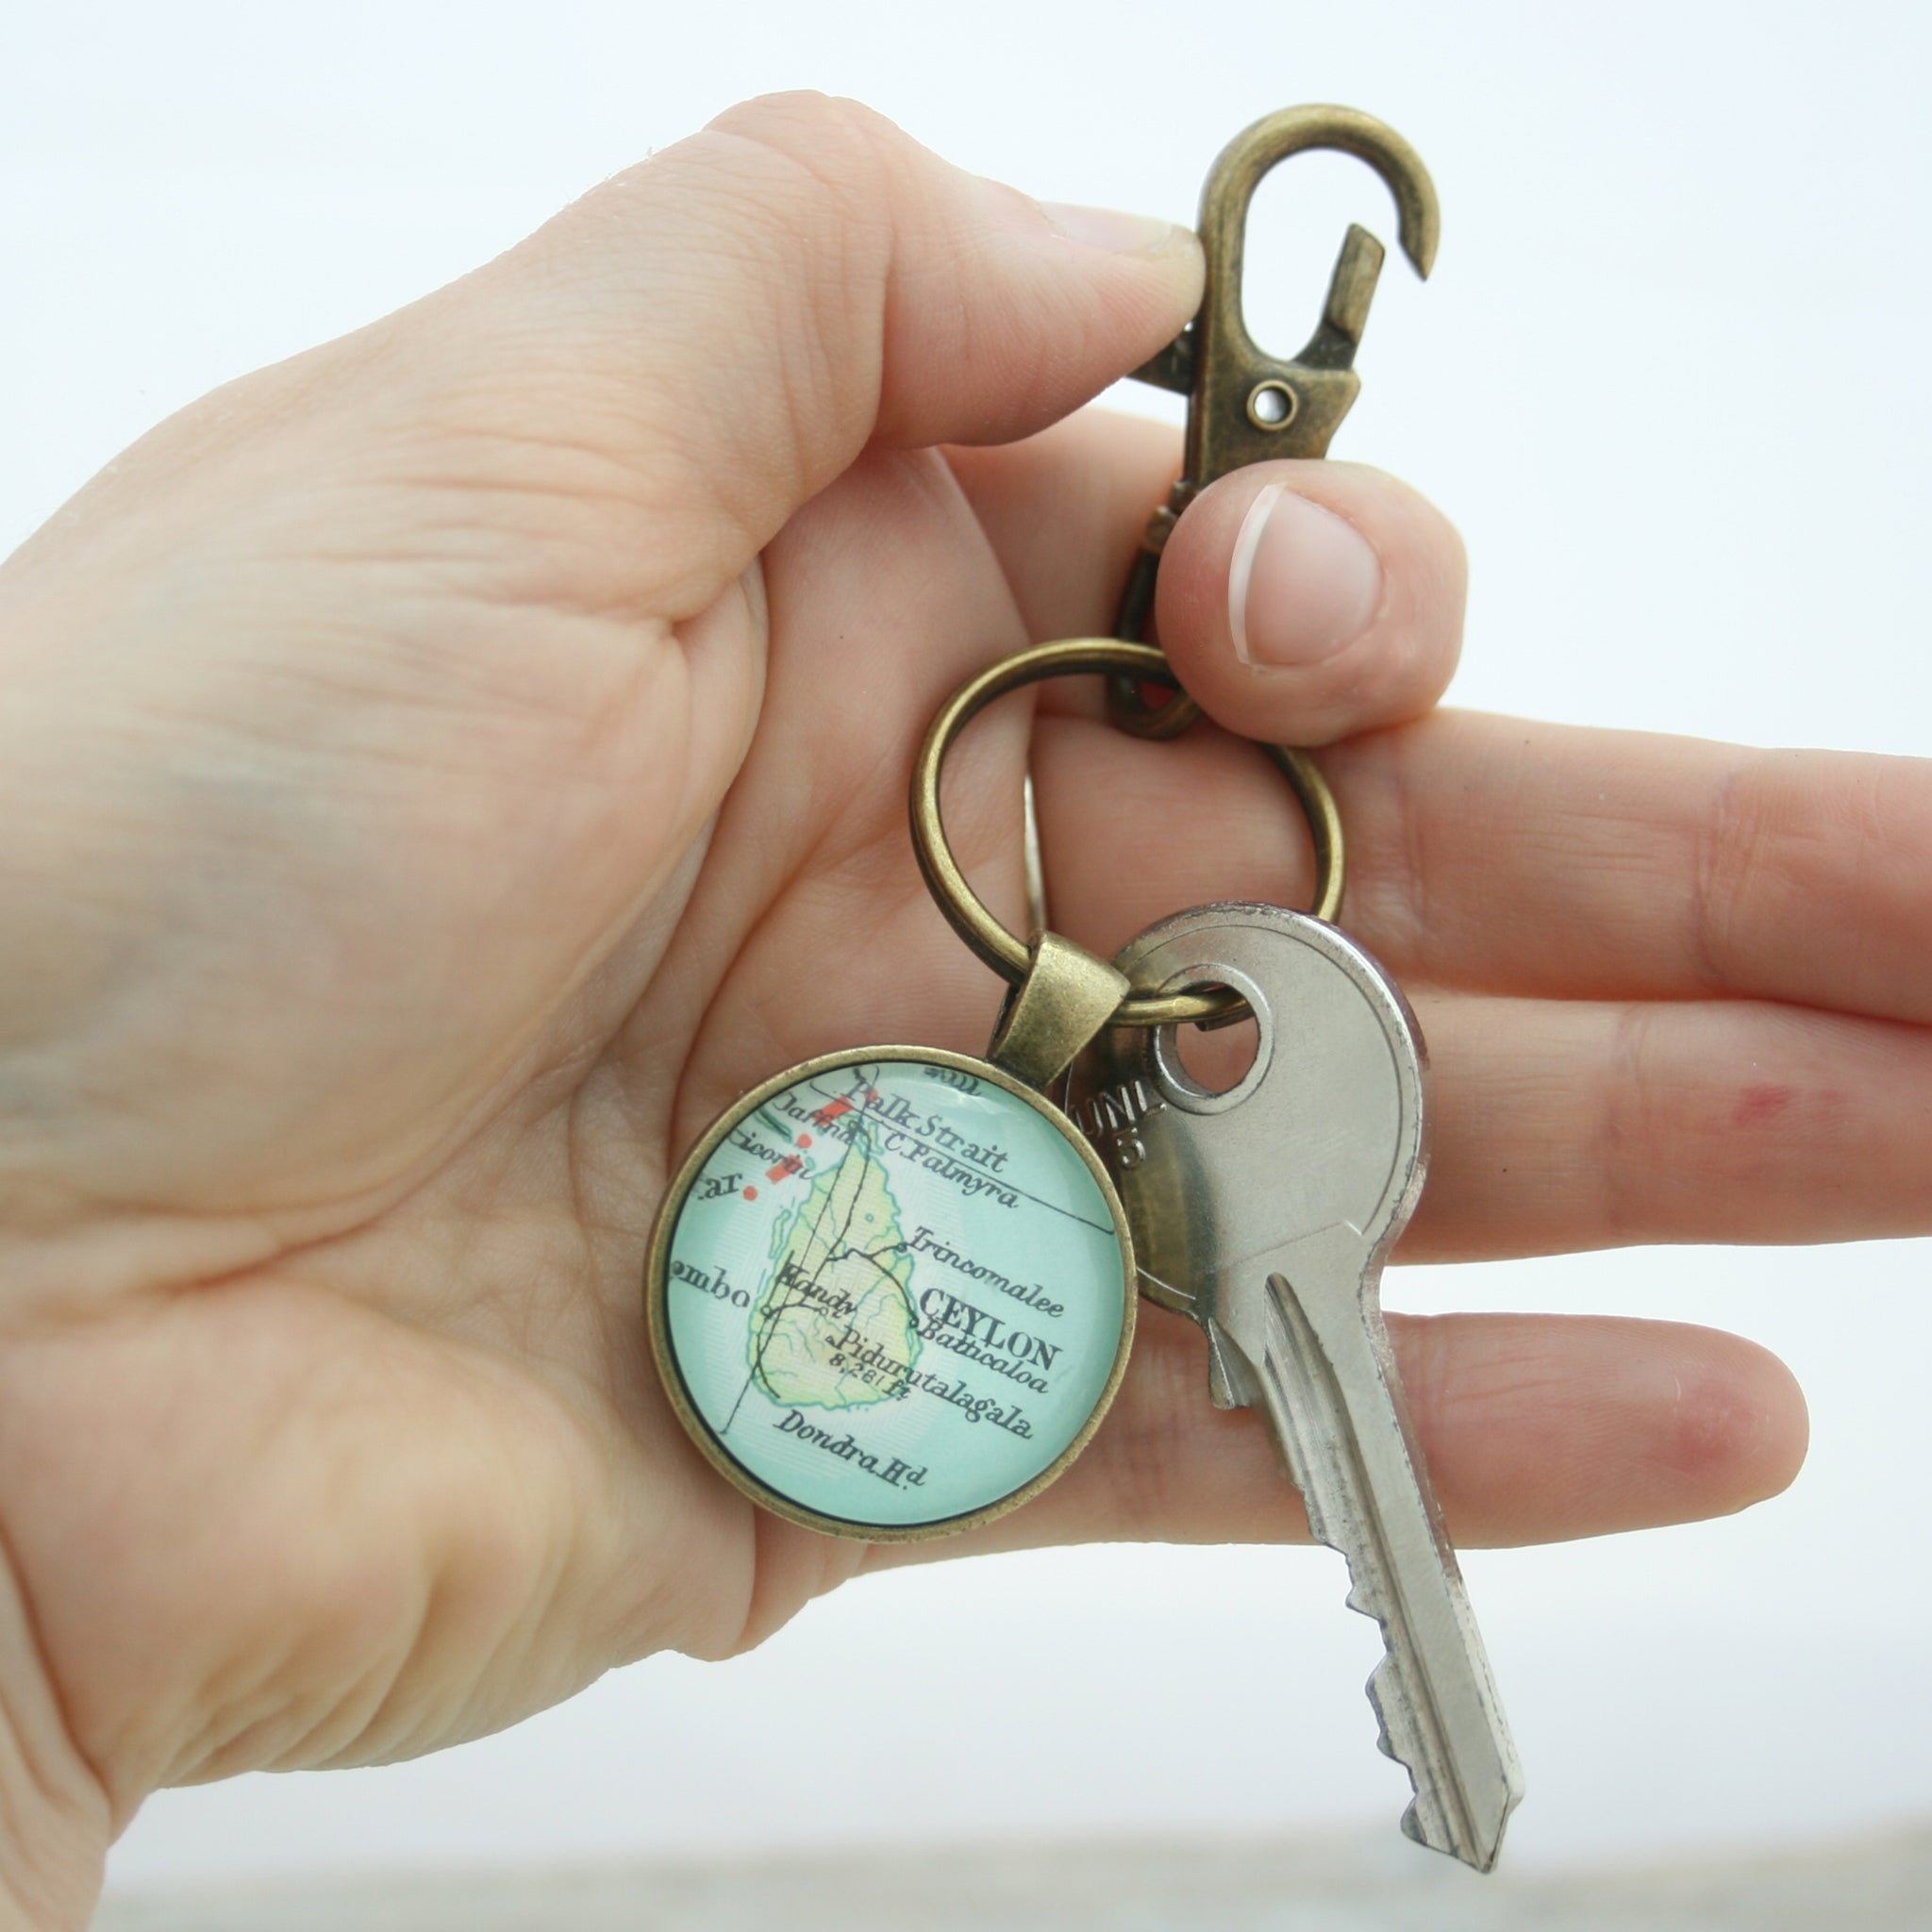 Hold in hand Personalised Keyring in bronze color featuring map of Ceylon